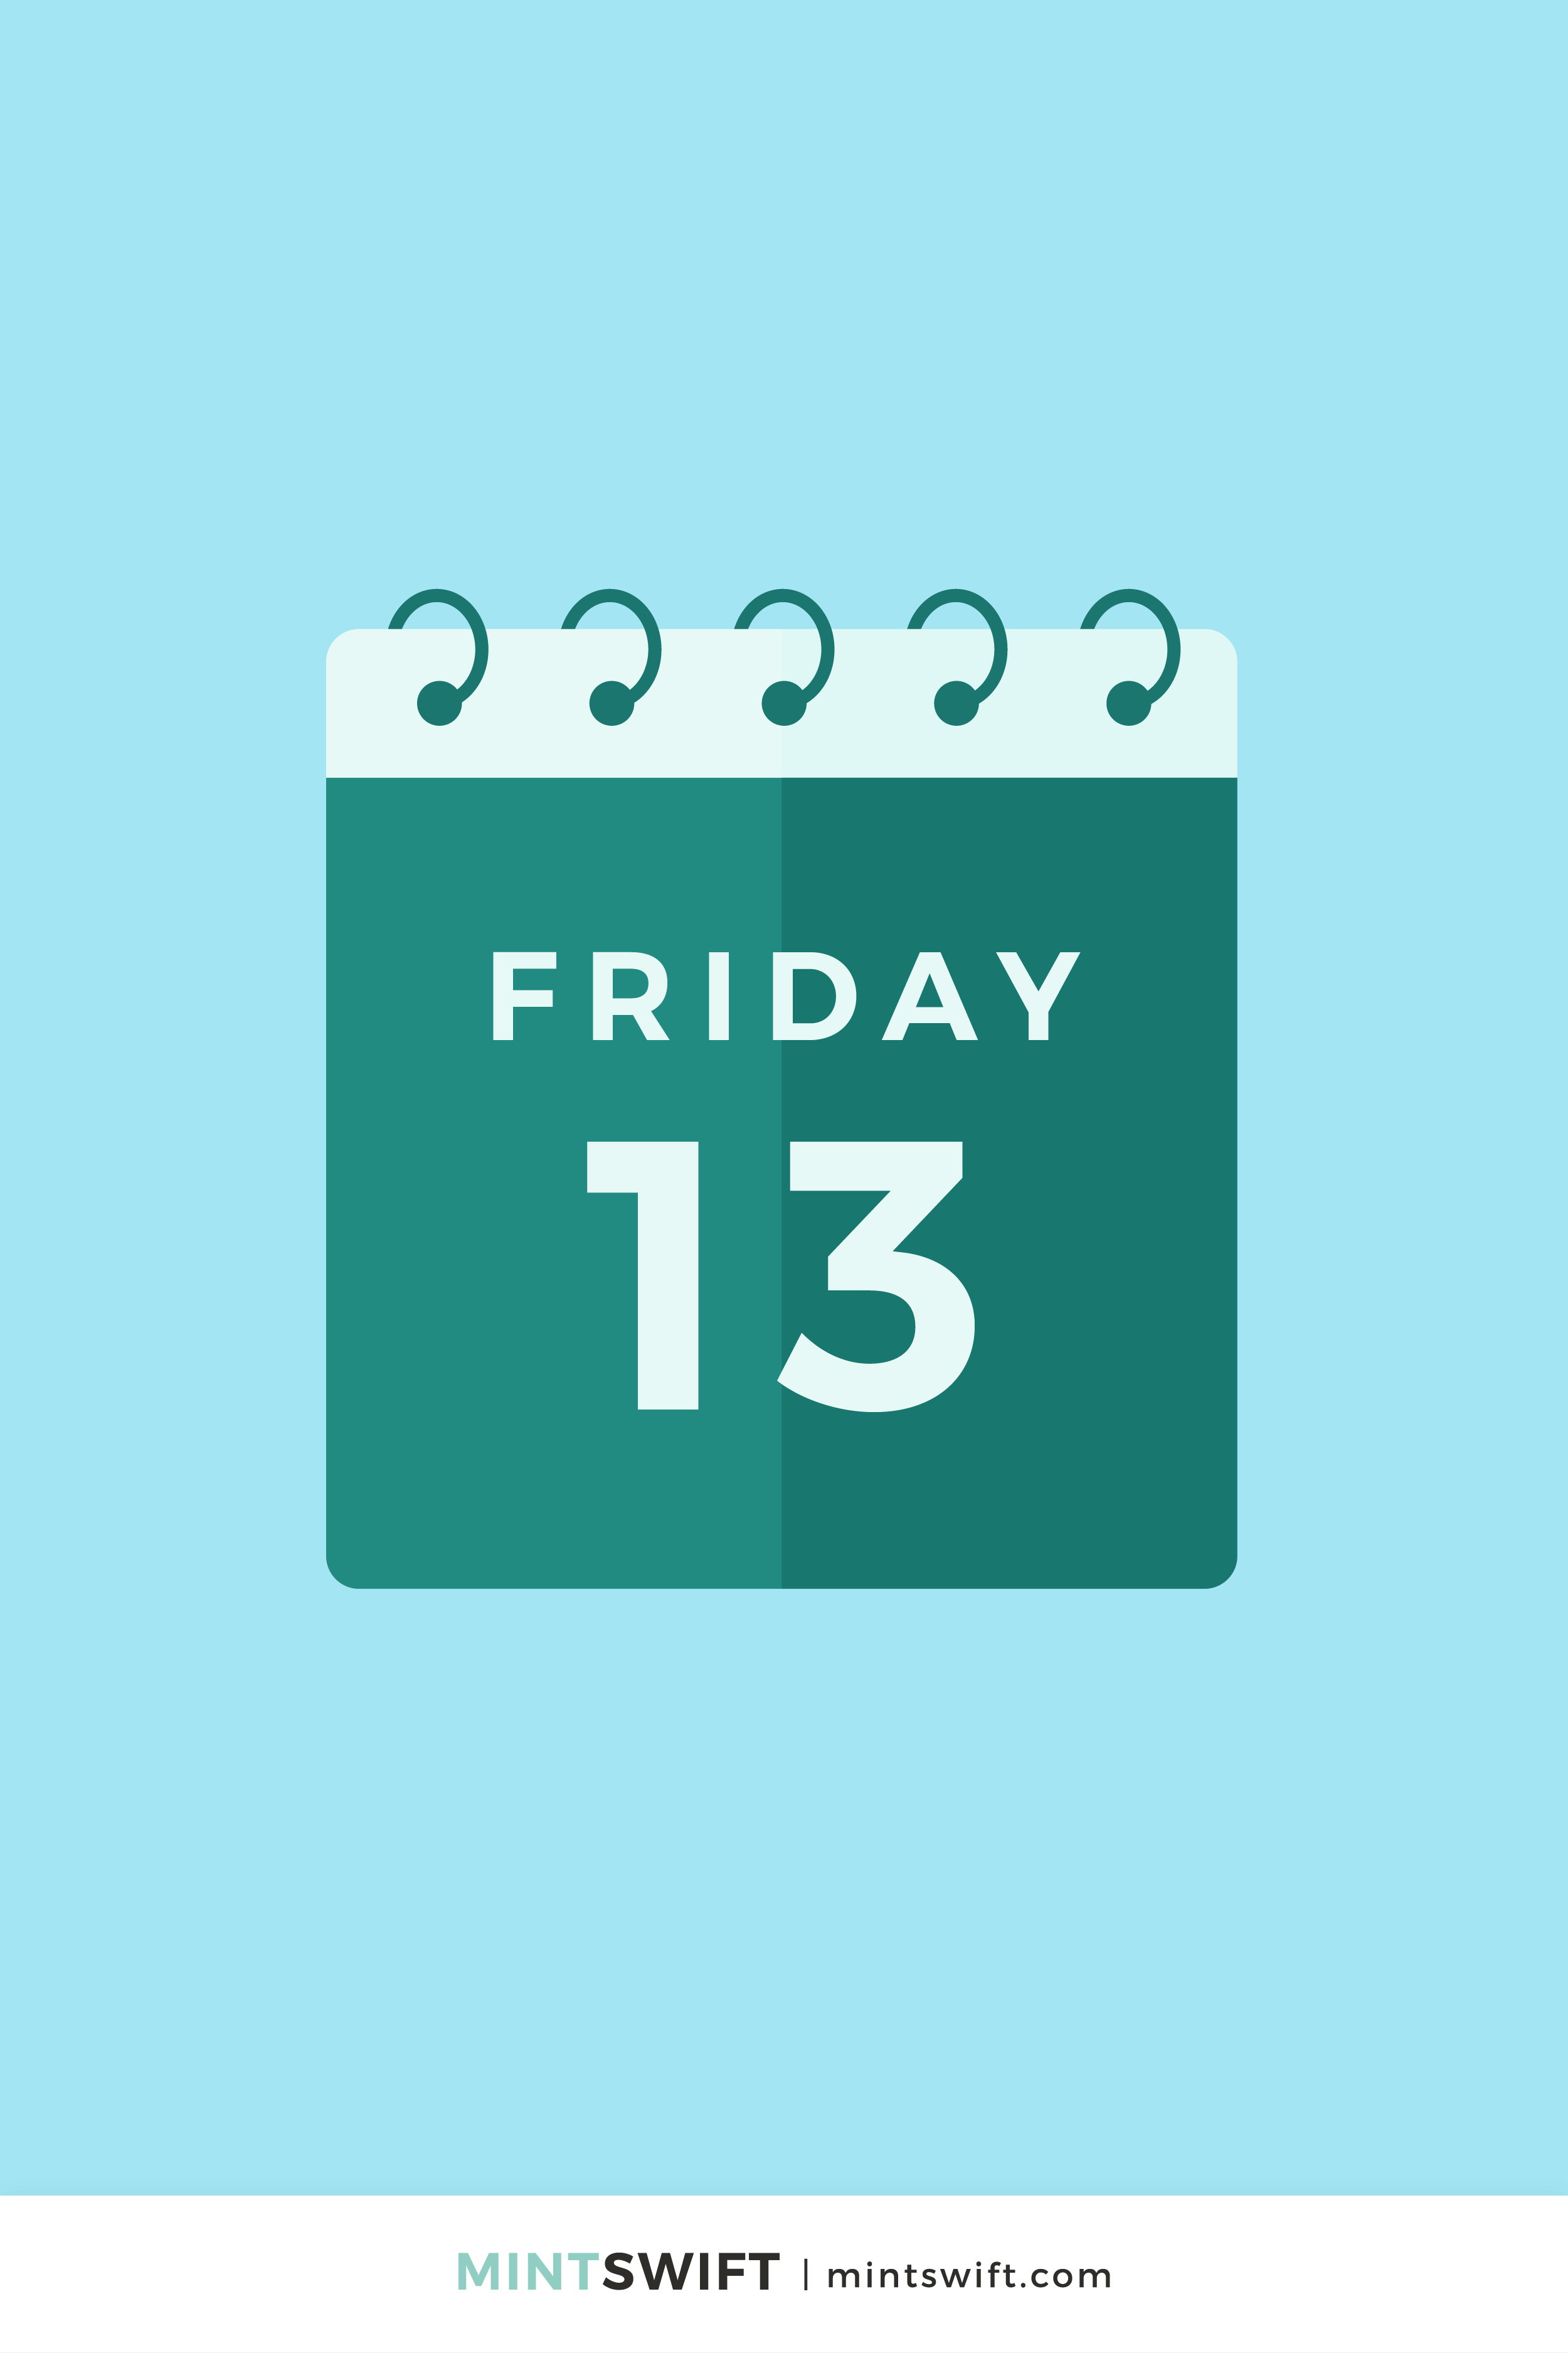 Dark green vector illustration of a calendar showing the day 13th Friday in flat design style on a sky blue background